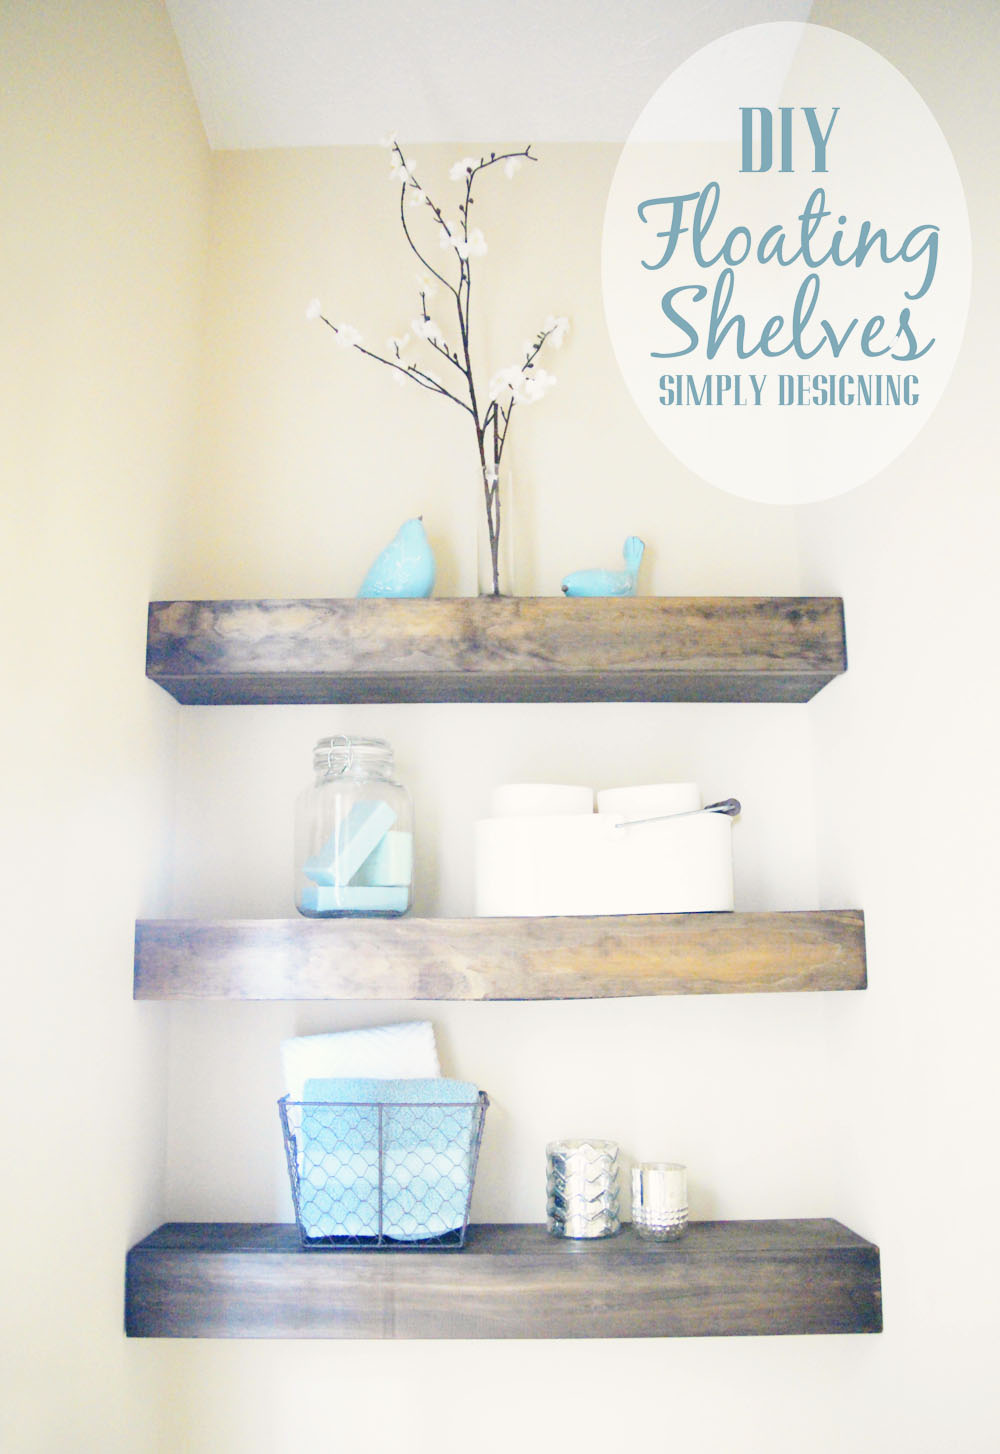 diy floating shelves how measure cut and install bathroom are really easy make they the perfect kitchen island table combo ikea sliding shoe rack command hook key holder prepac